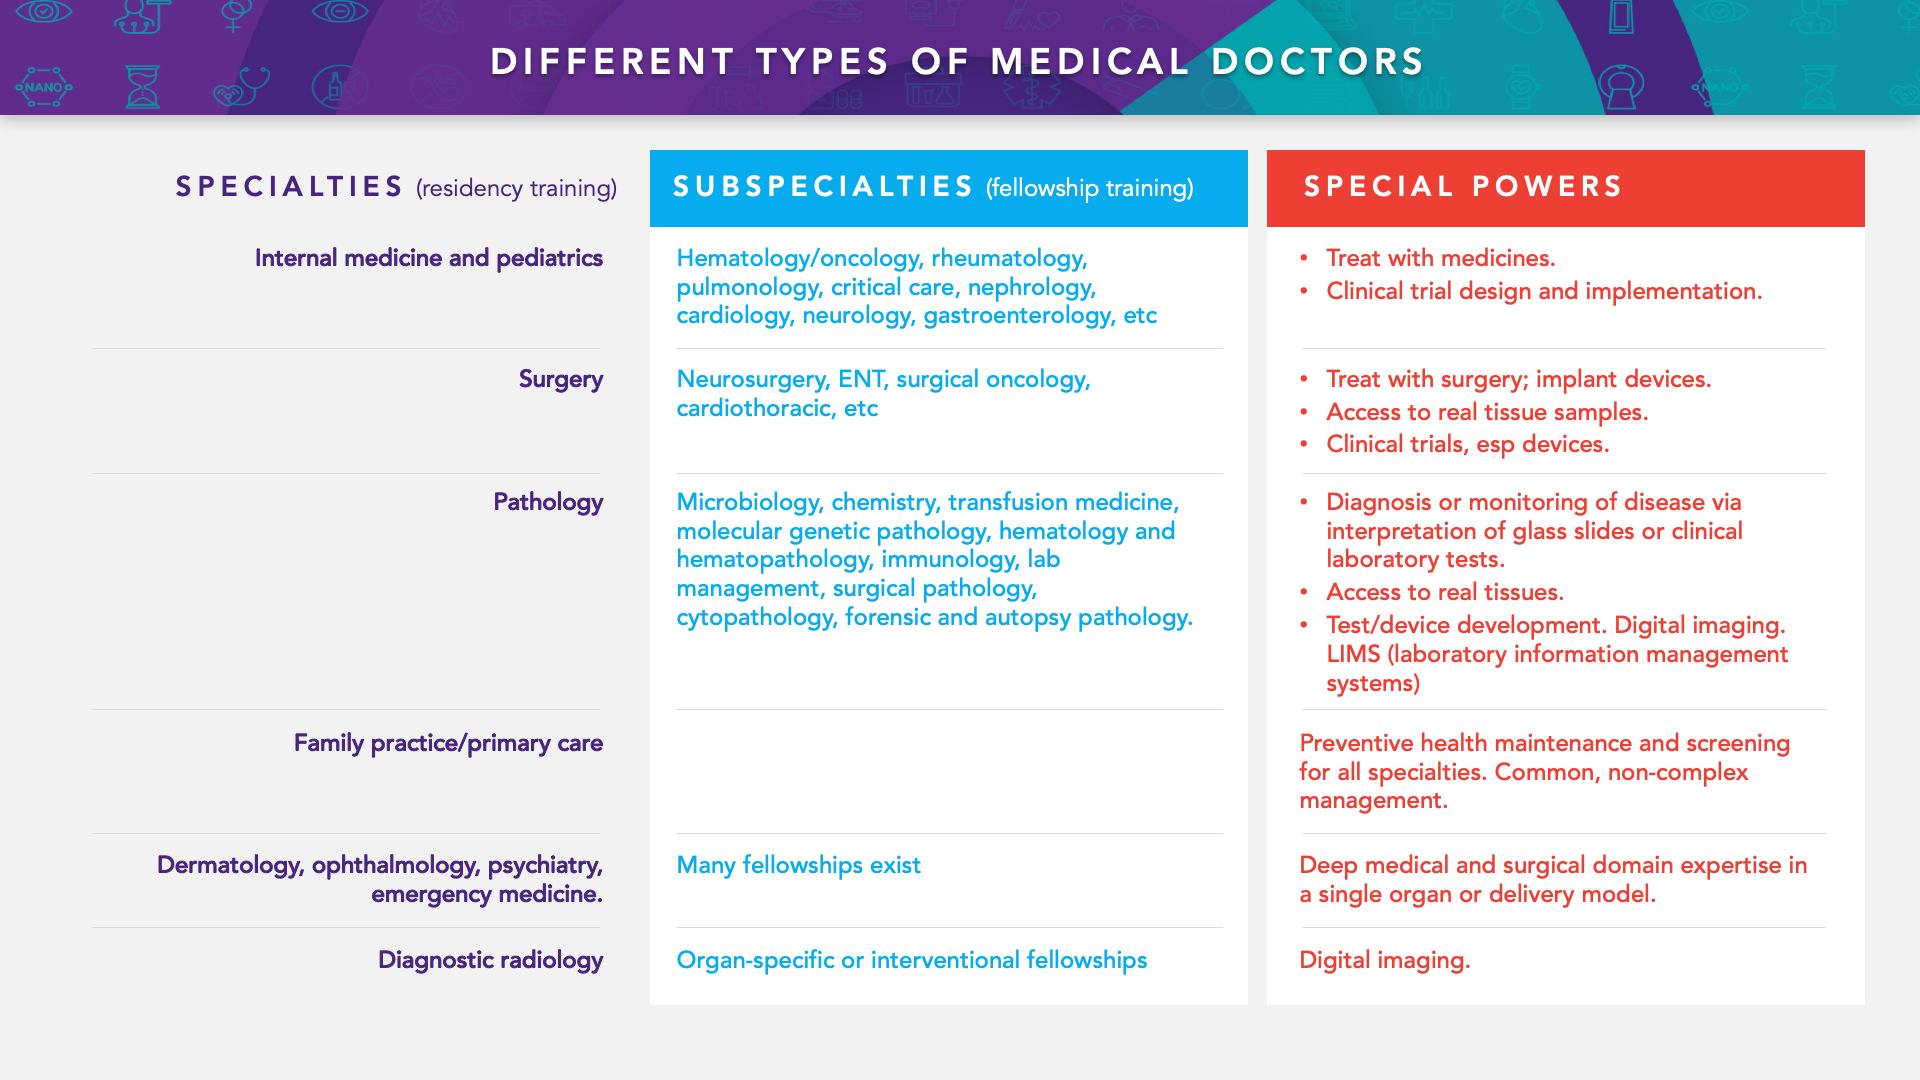 Table 2: Different types of medical doctors